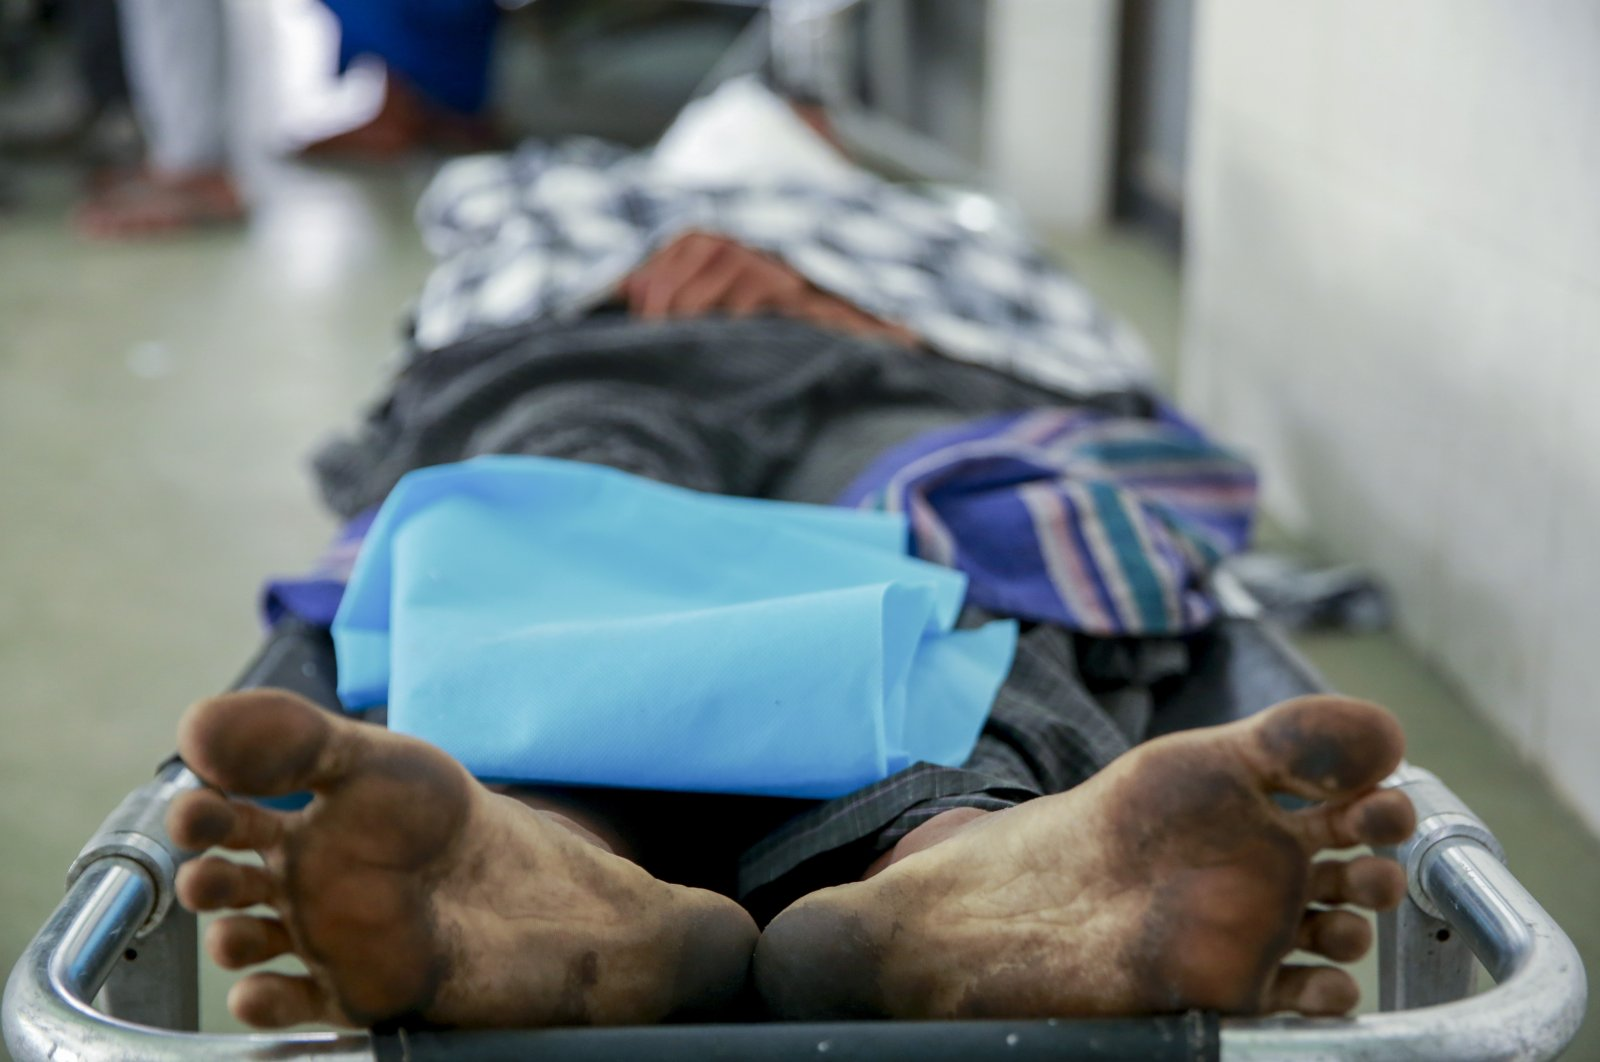 The body of a man who a doctor said was shot and killed by Myanmar security forces during an anti-military takeover protest, lies on a stretcher in Mandalay, Myanmar, March 23, 2021. (AP Photo)